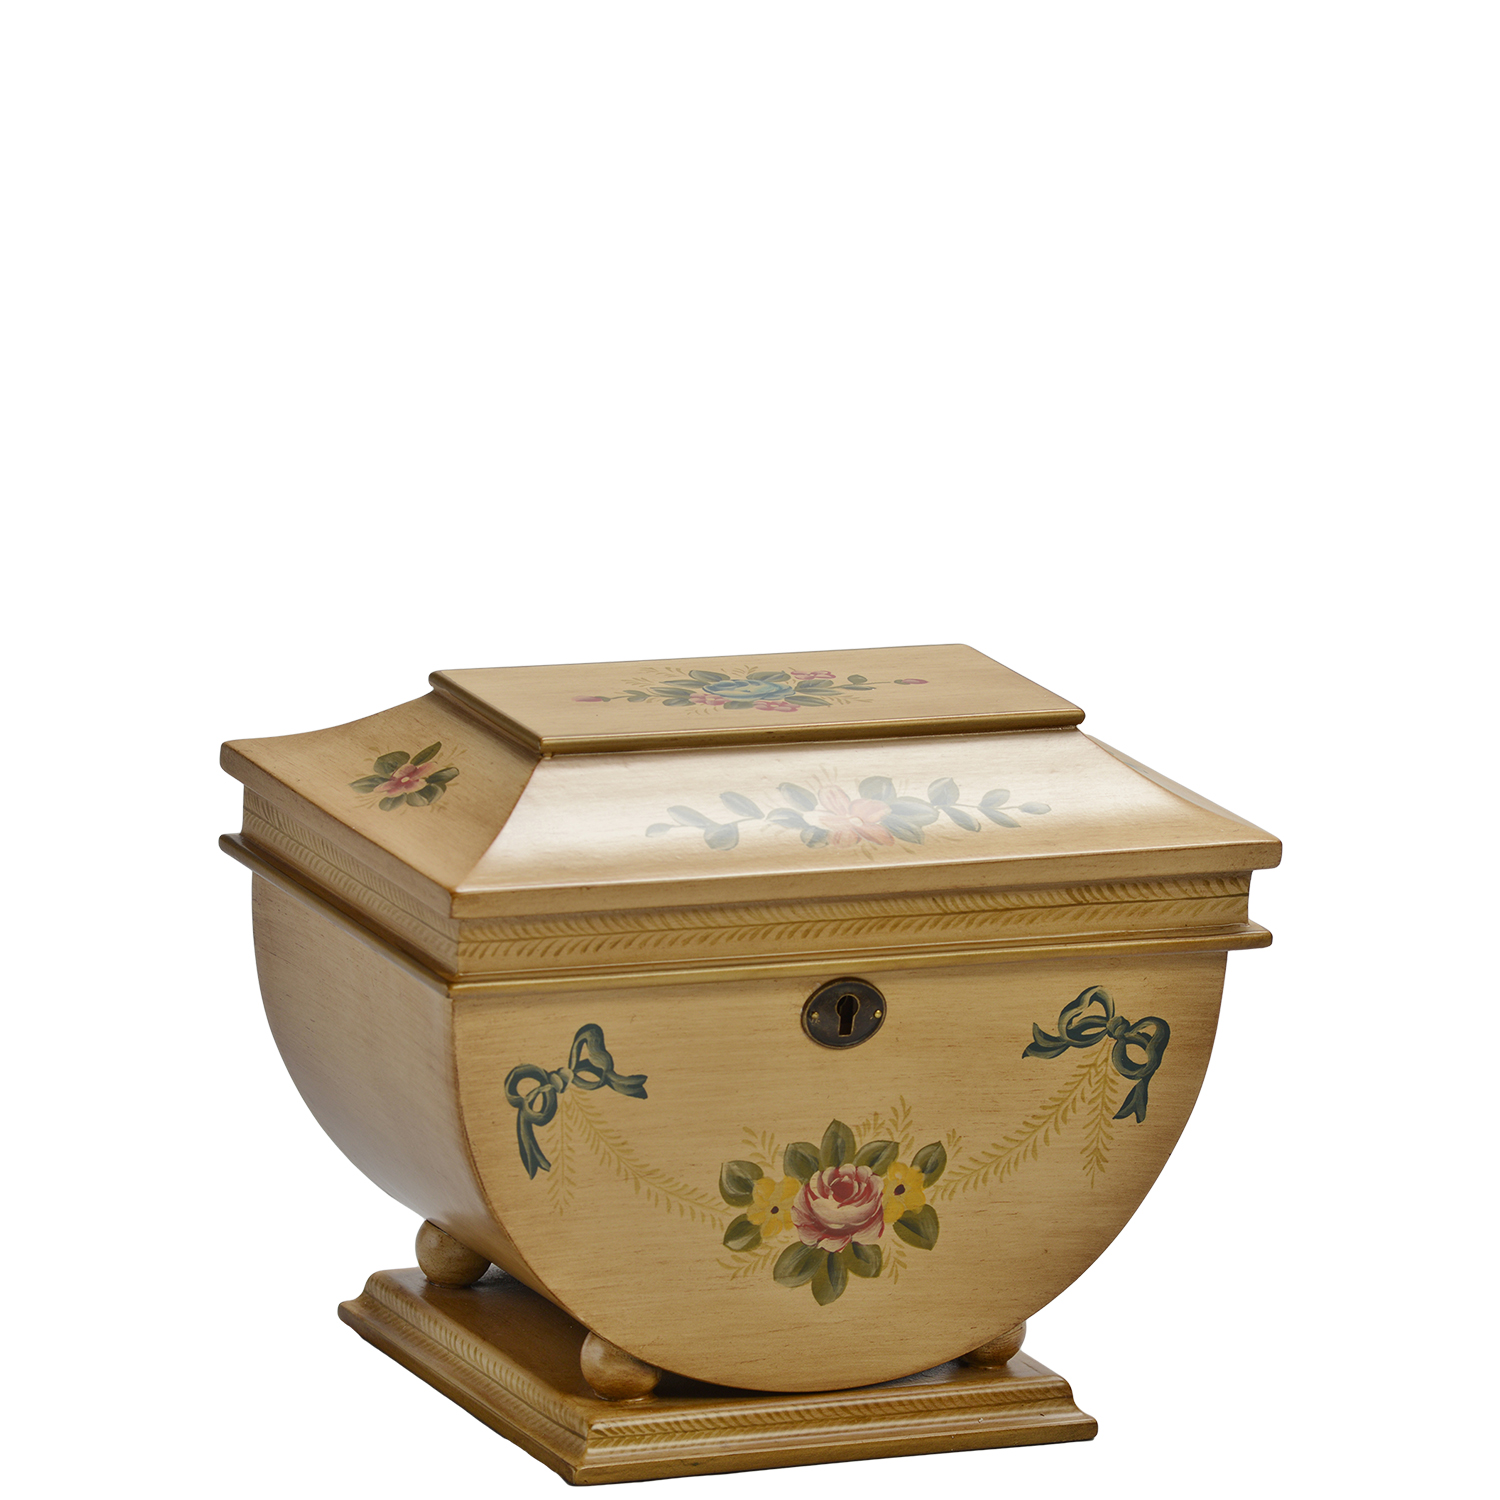 """Colonial Memory Life Chest™ - Delicate hand-painted Victorian floral designs on a rubbed honey sage exterior grace this uniquely shaped Memory Life Chest that rests atop a square base. Rich velvet in warm coffee tones wraps the interior surfaces.Dimensions: 11"""" W x 7"""" D x 8.5"""" HWeight : 5 lbs."""